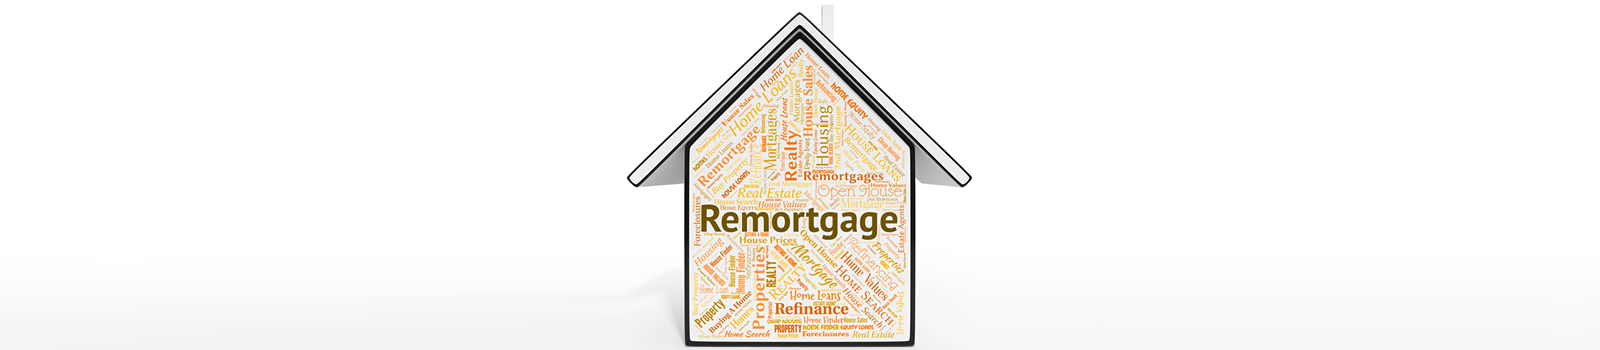 remortgage-banner